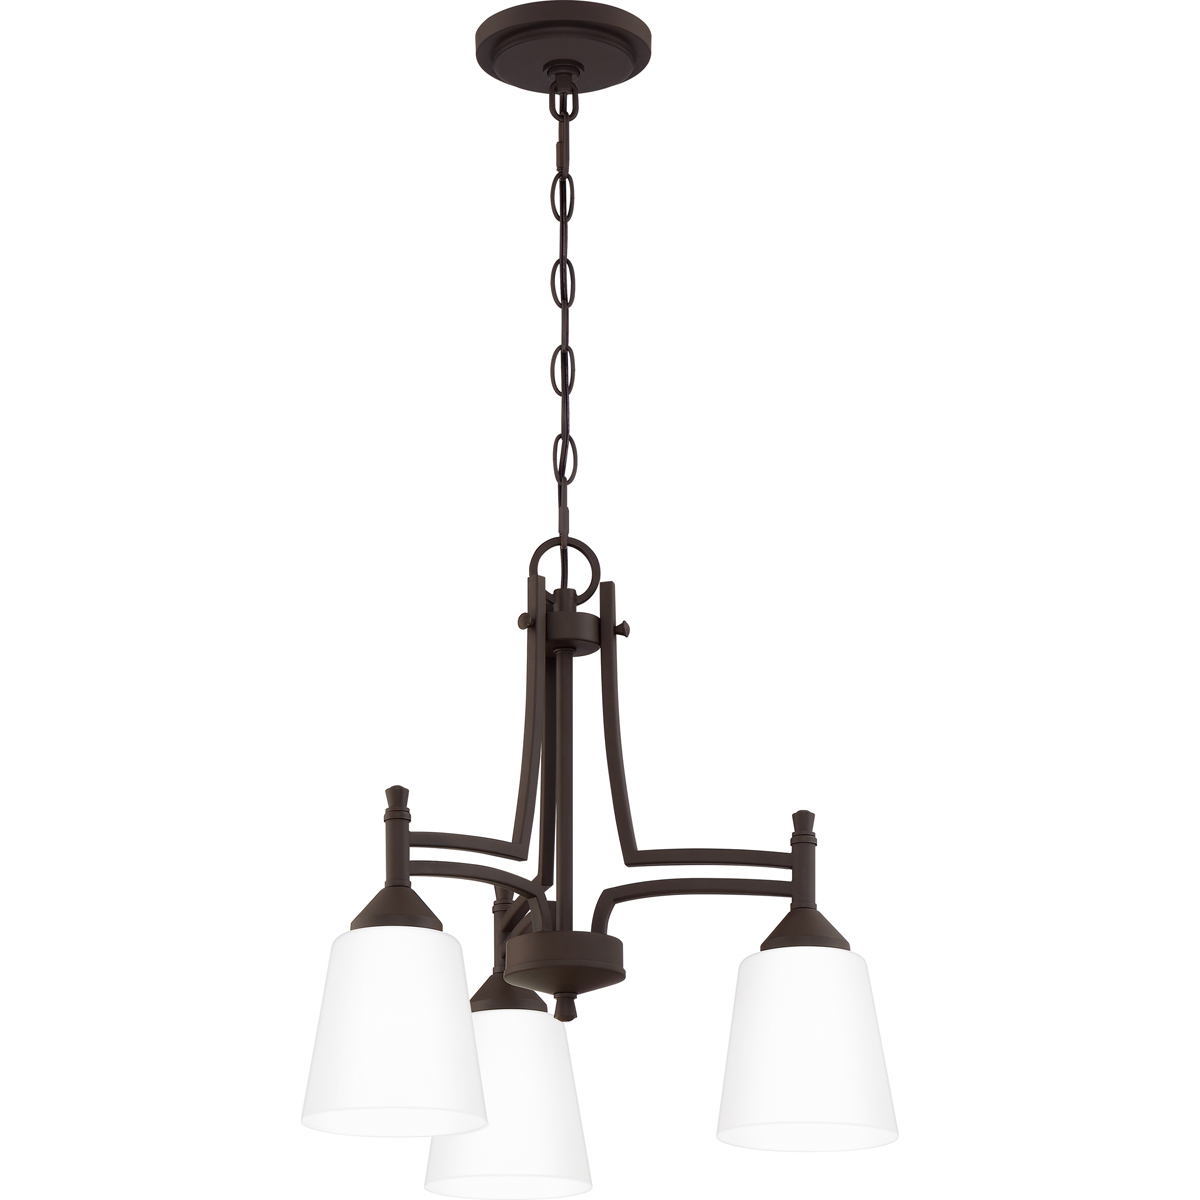 Primary image for Billingsley 3-Light Chandelier in Old Bronze